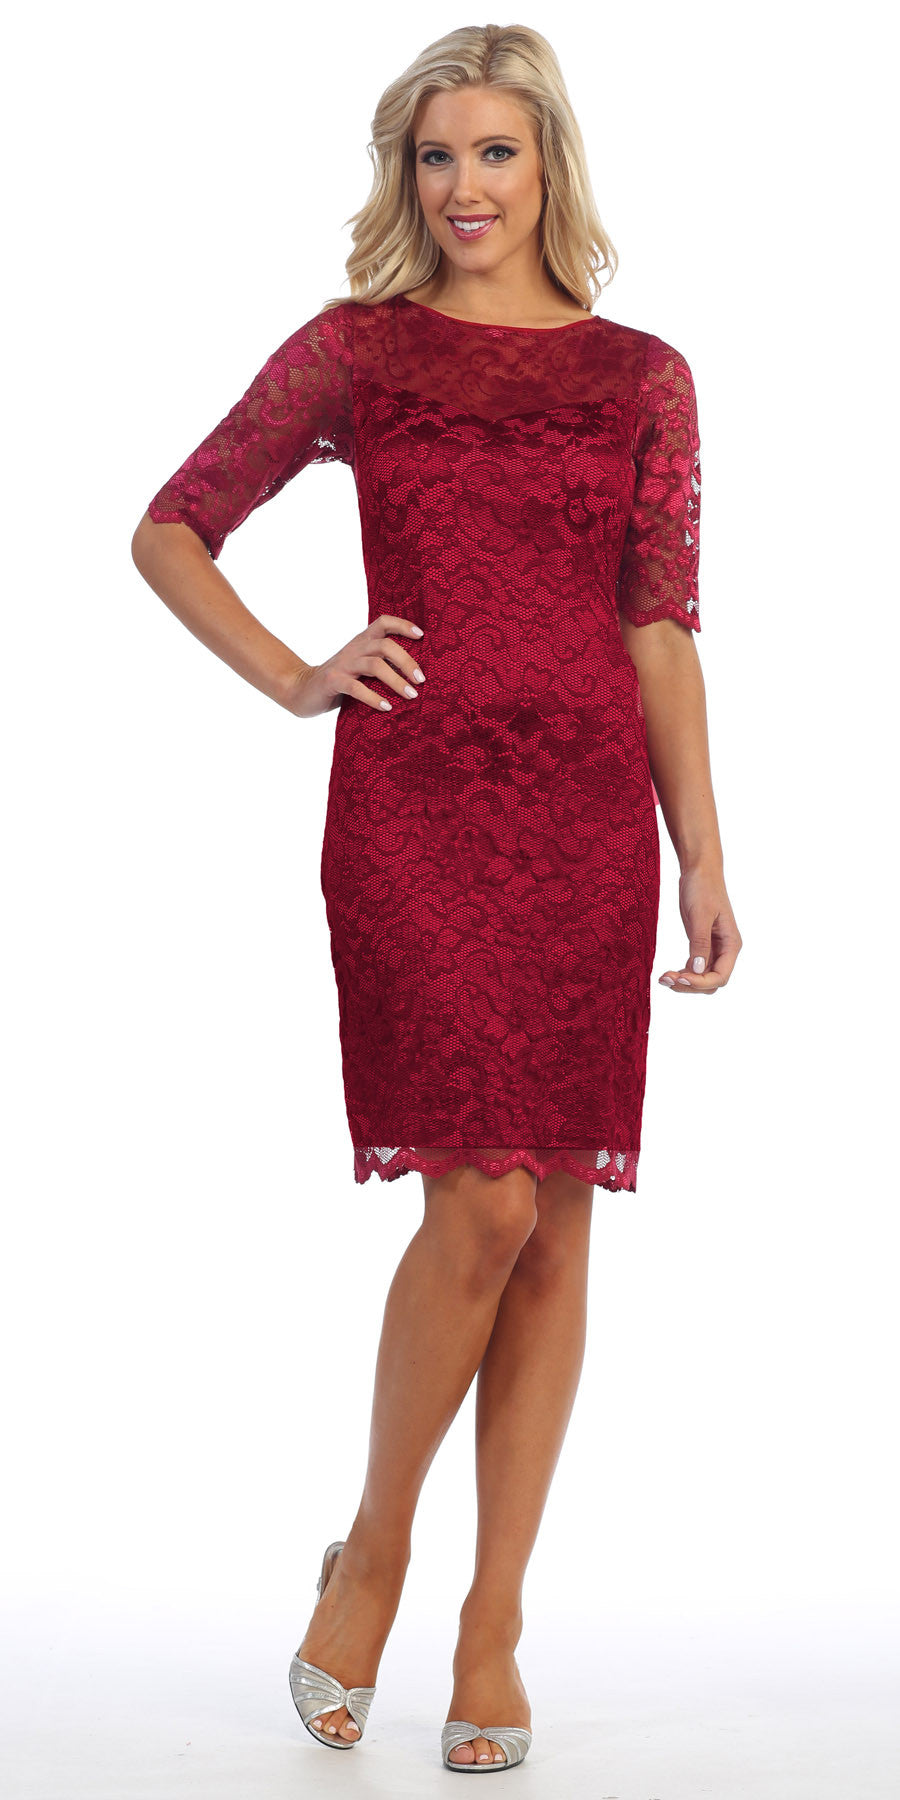 Lace Cocktail Dress Knee Length Burgundy 3/4 Length Sleeves